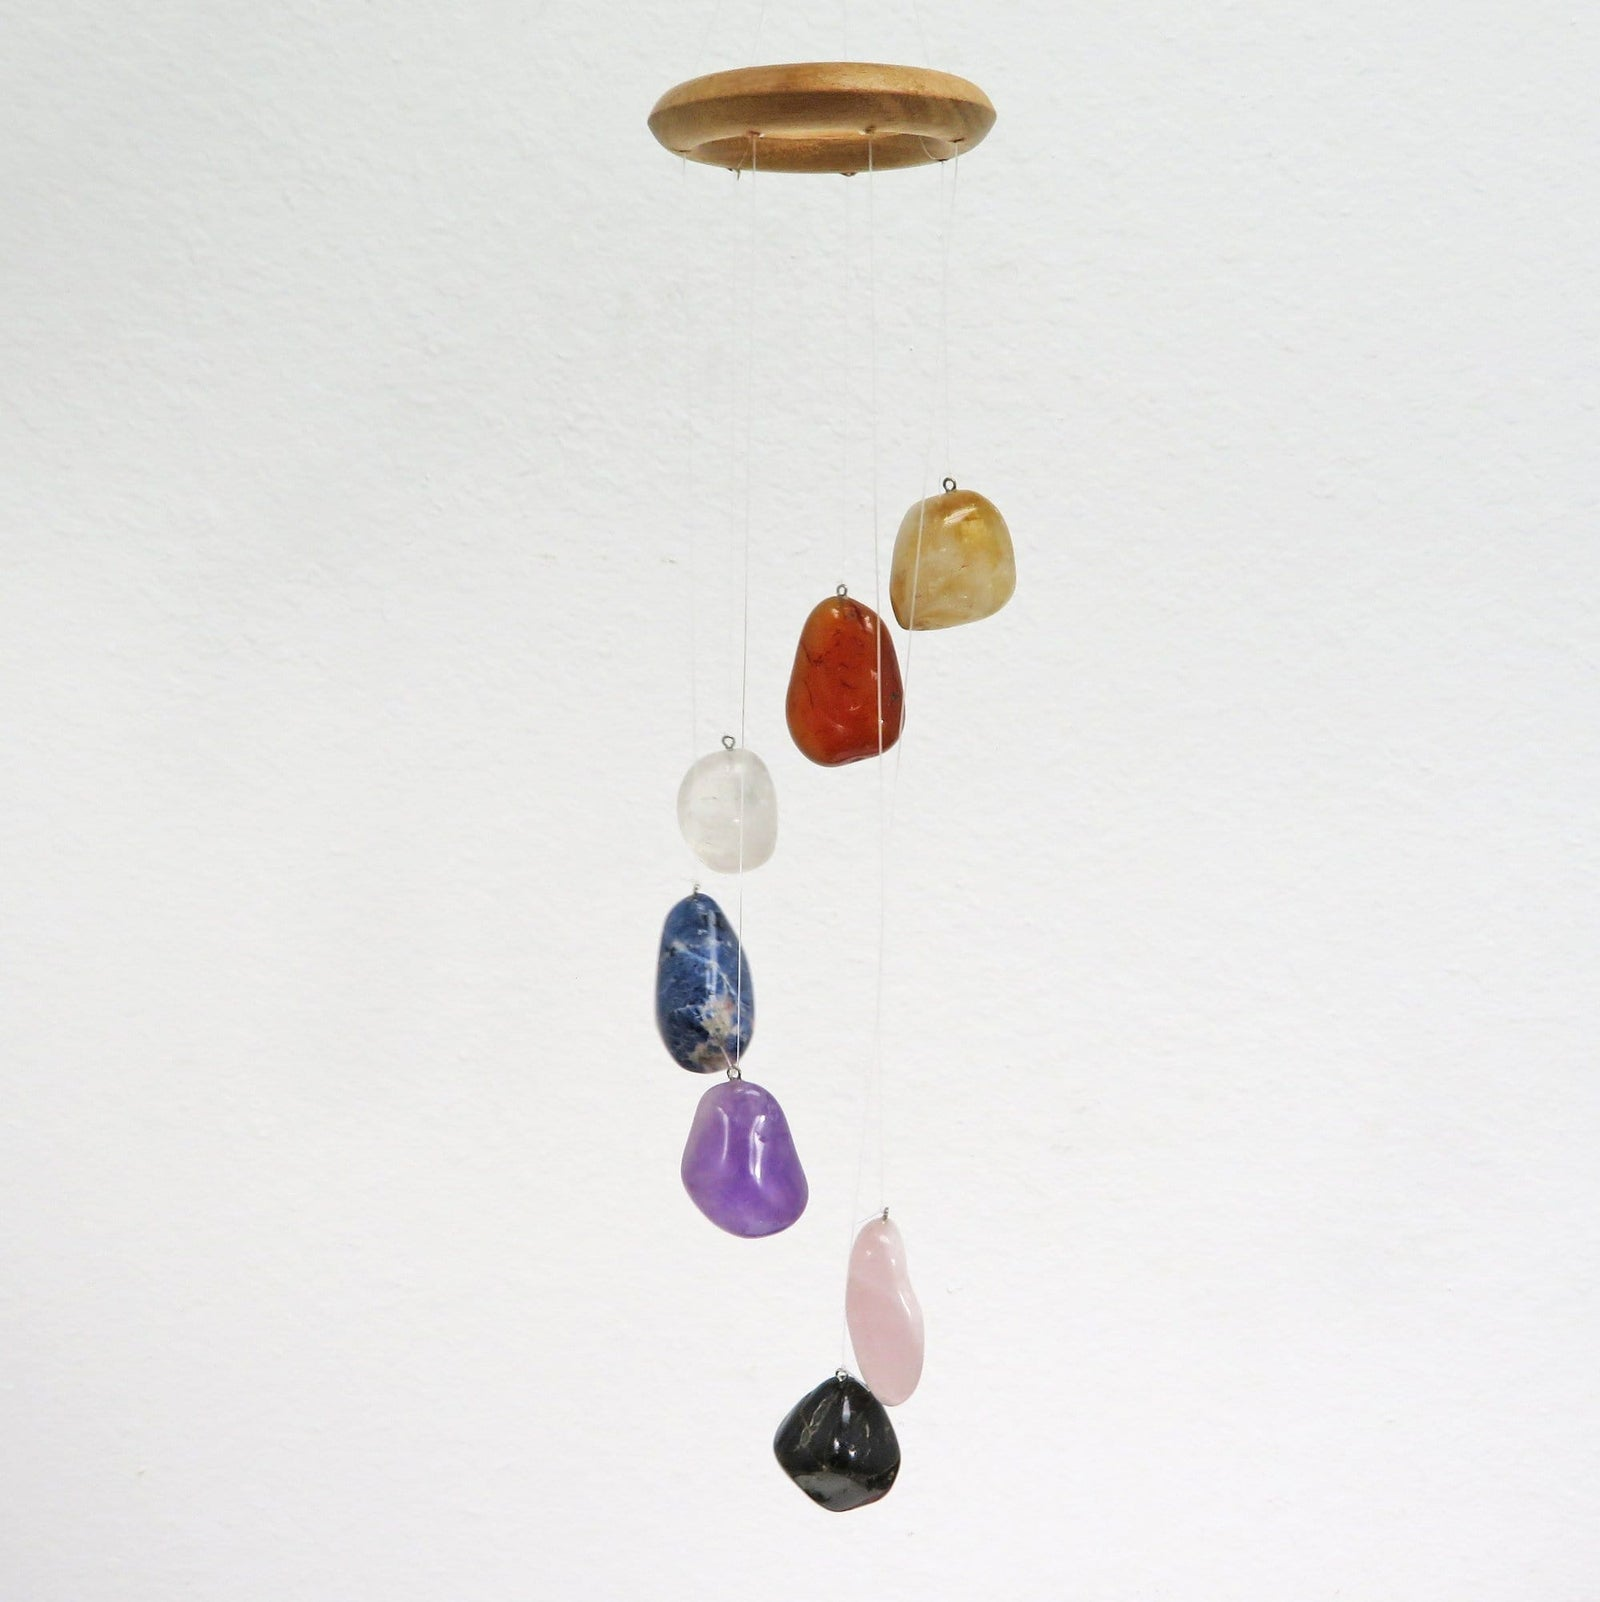 Chakra Stone Wind Chimes Polished Stones - Home Decór - Spiritual Gift - Crystal Collection (OB1B11)